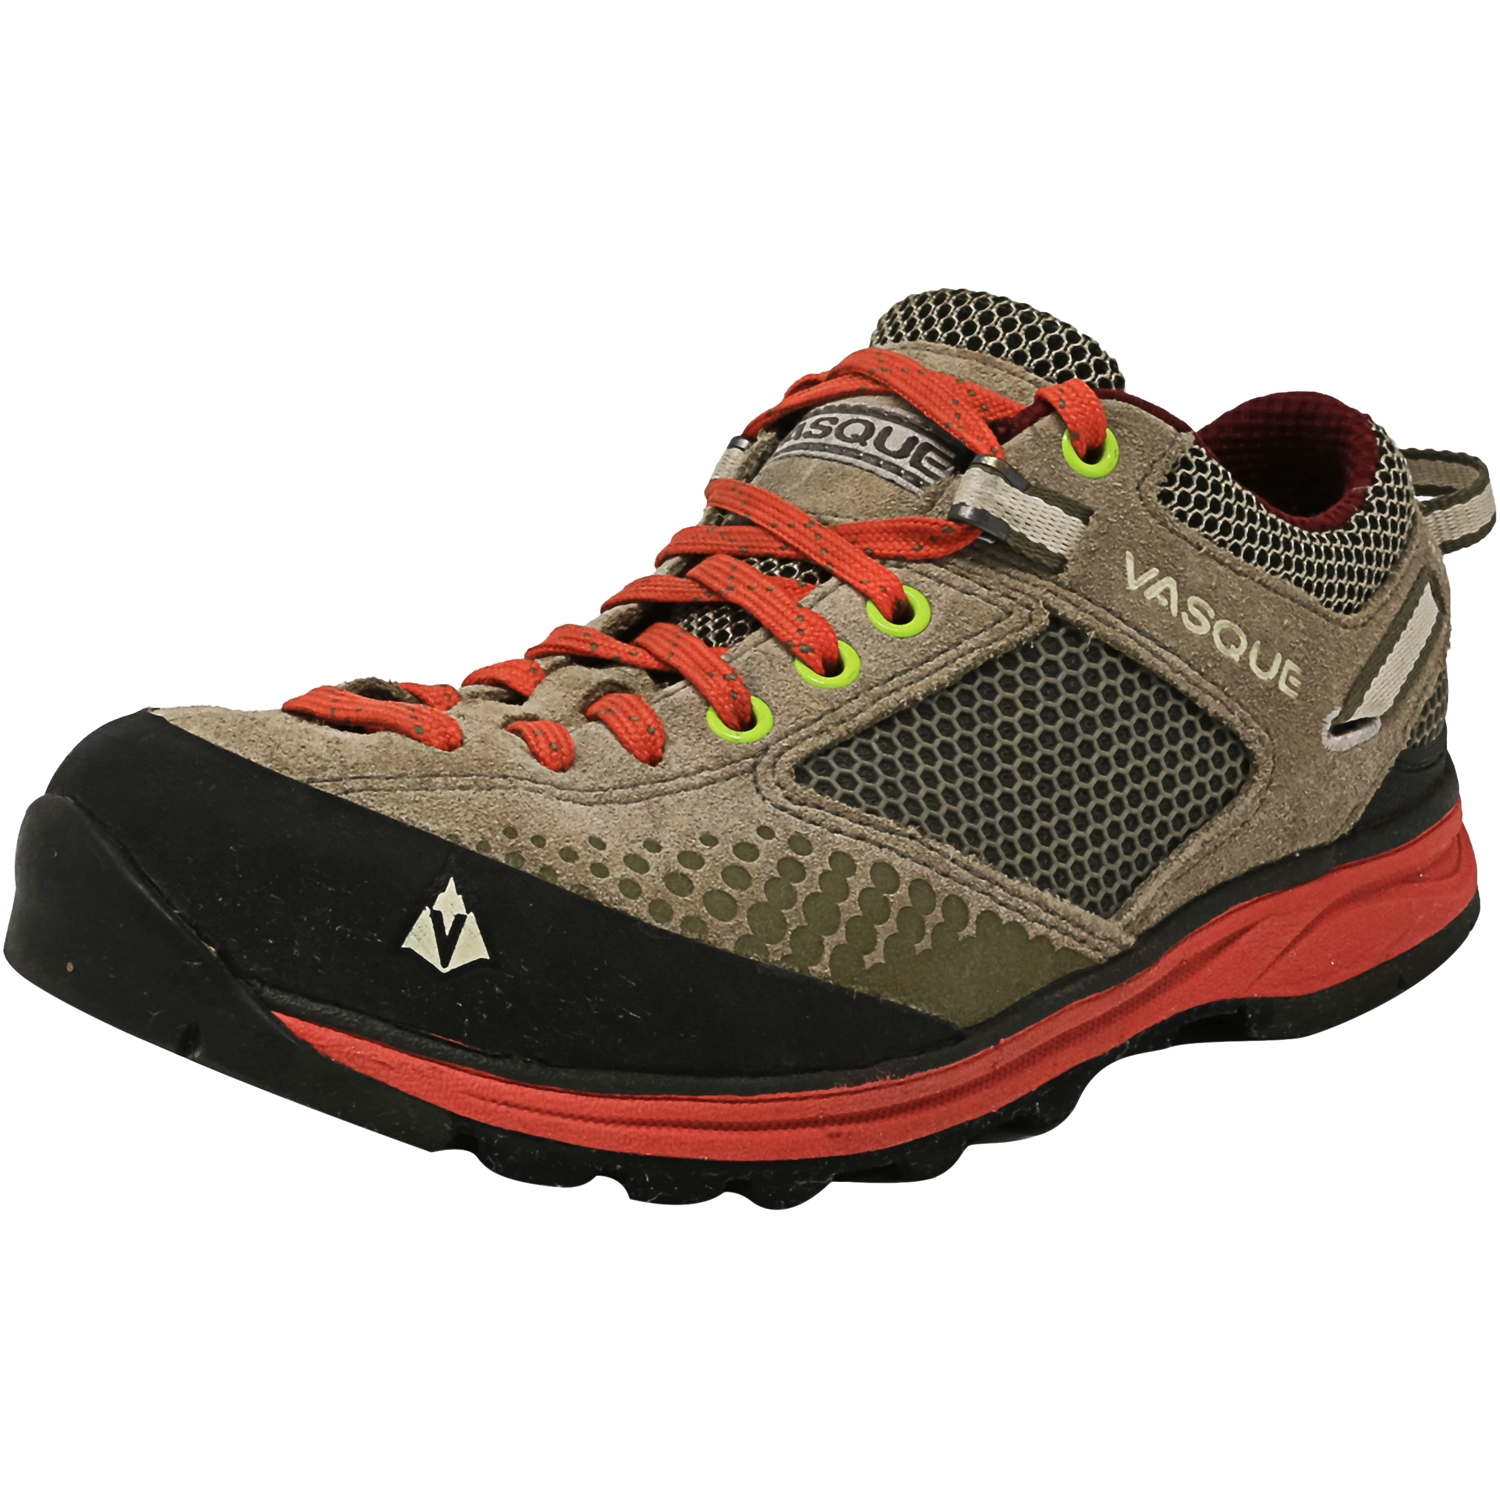 Vasque Women's Grand Traverse Aluminum / Hot Coral Ankle-High Fabric Hiking Shoe - 6.5M